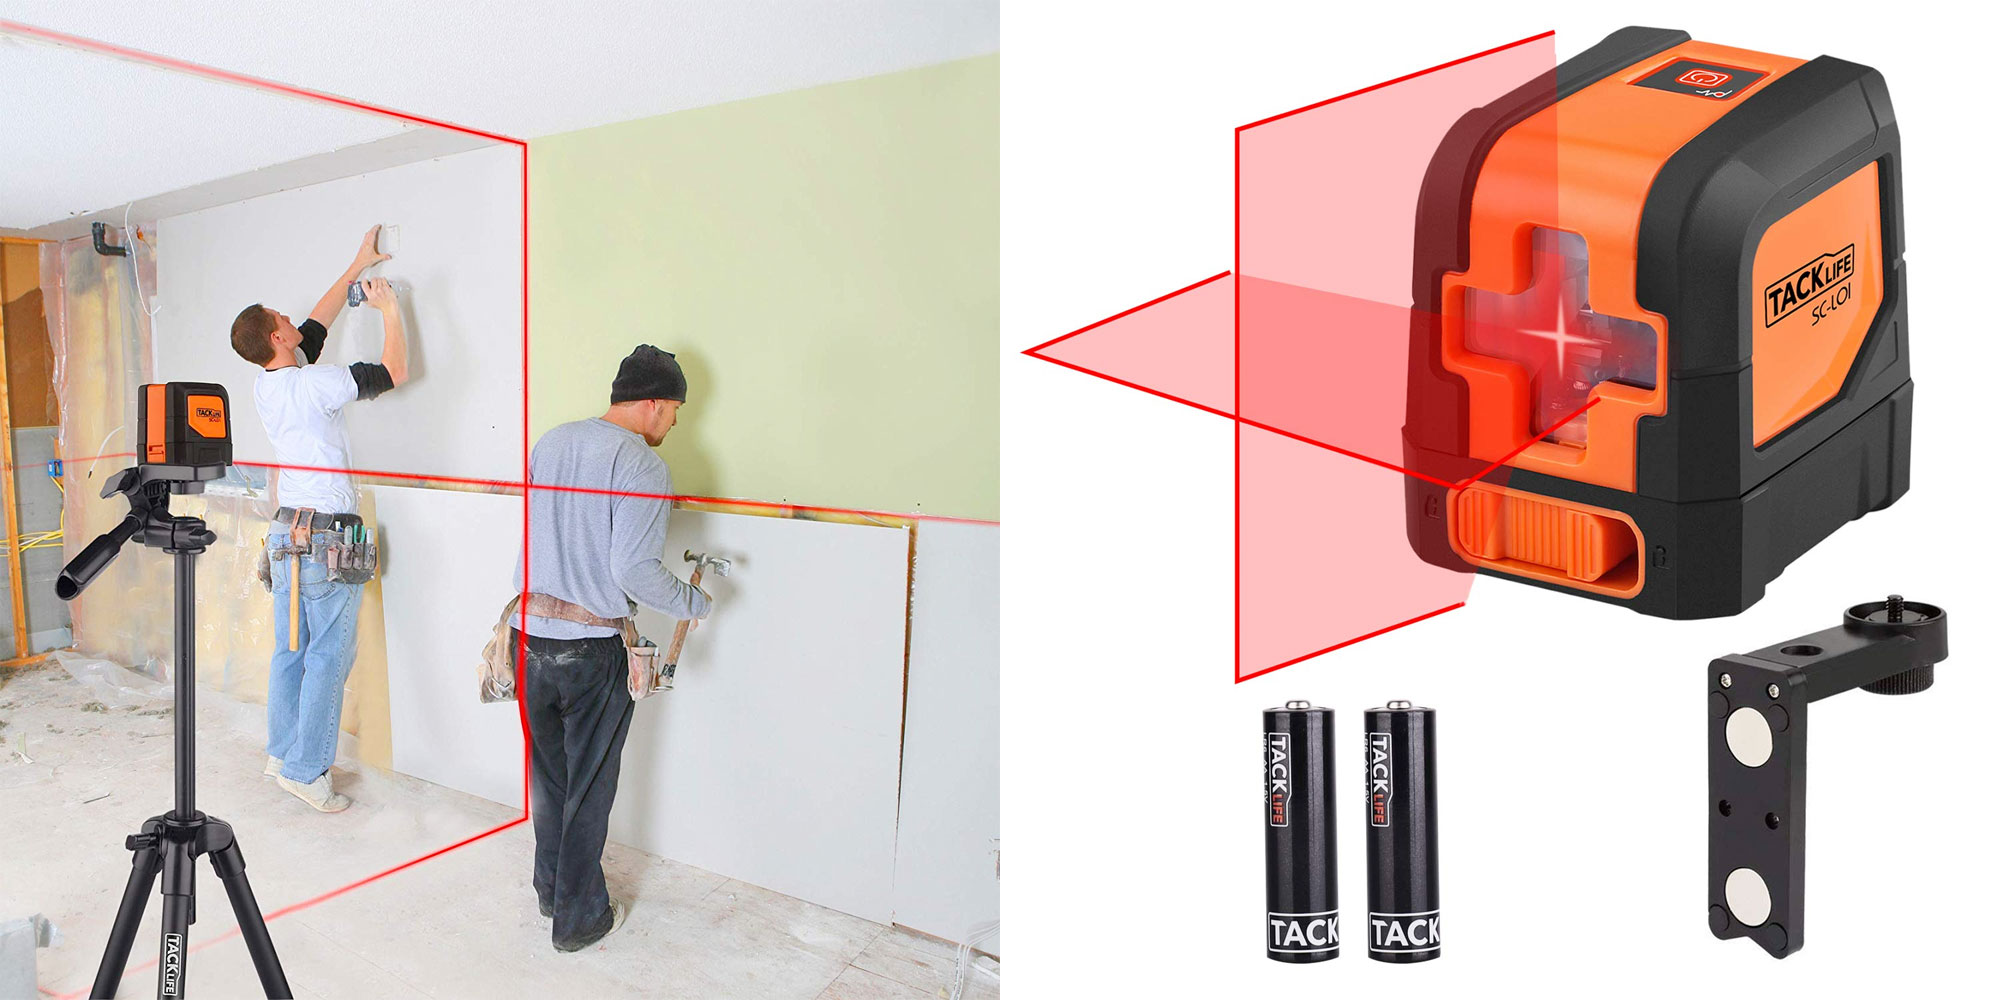 Make sure your drywall is perfectly straight w/ this 50-foot laser level at $27.50 shipped